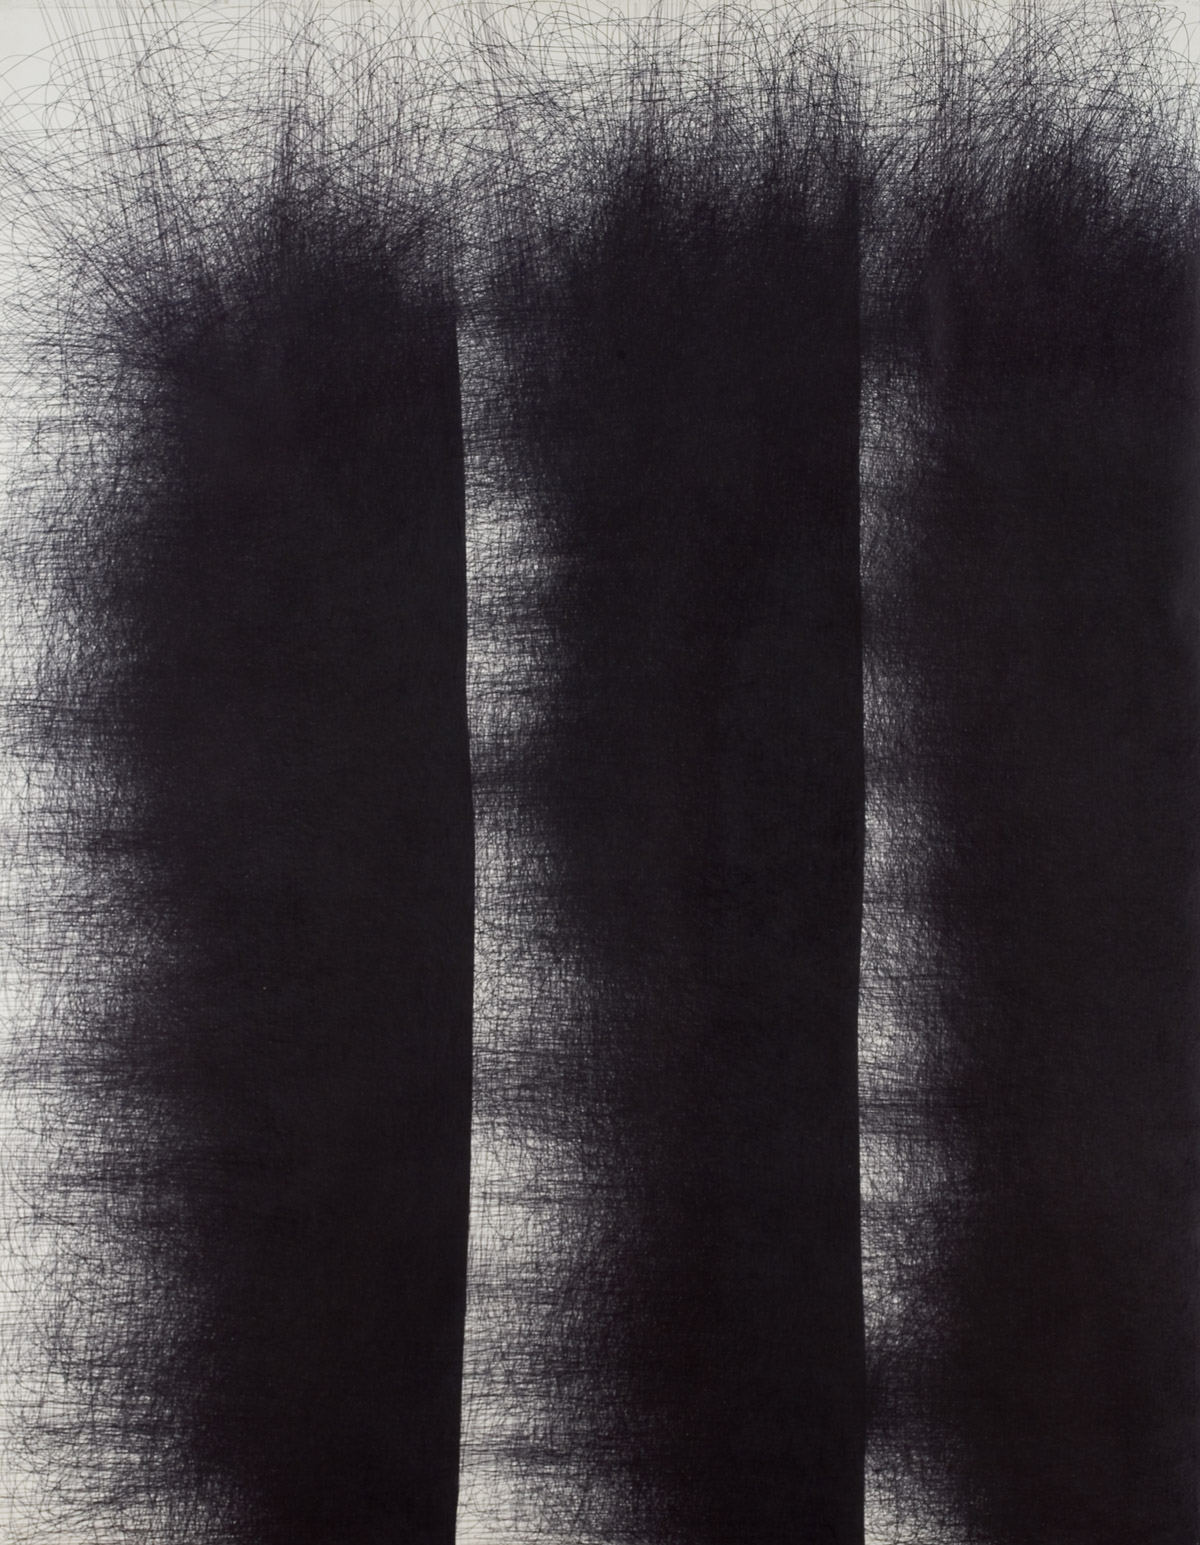 IL LEE, Untitled 978 I, 1997-98, ballpoint ink on paper,82 x 61 inches (208.3 x 154.9 cm)